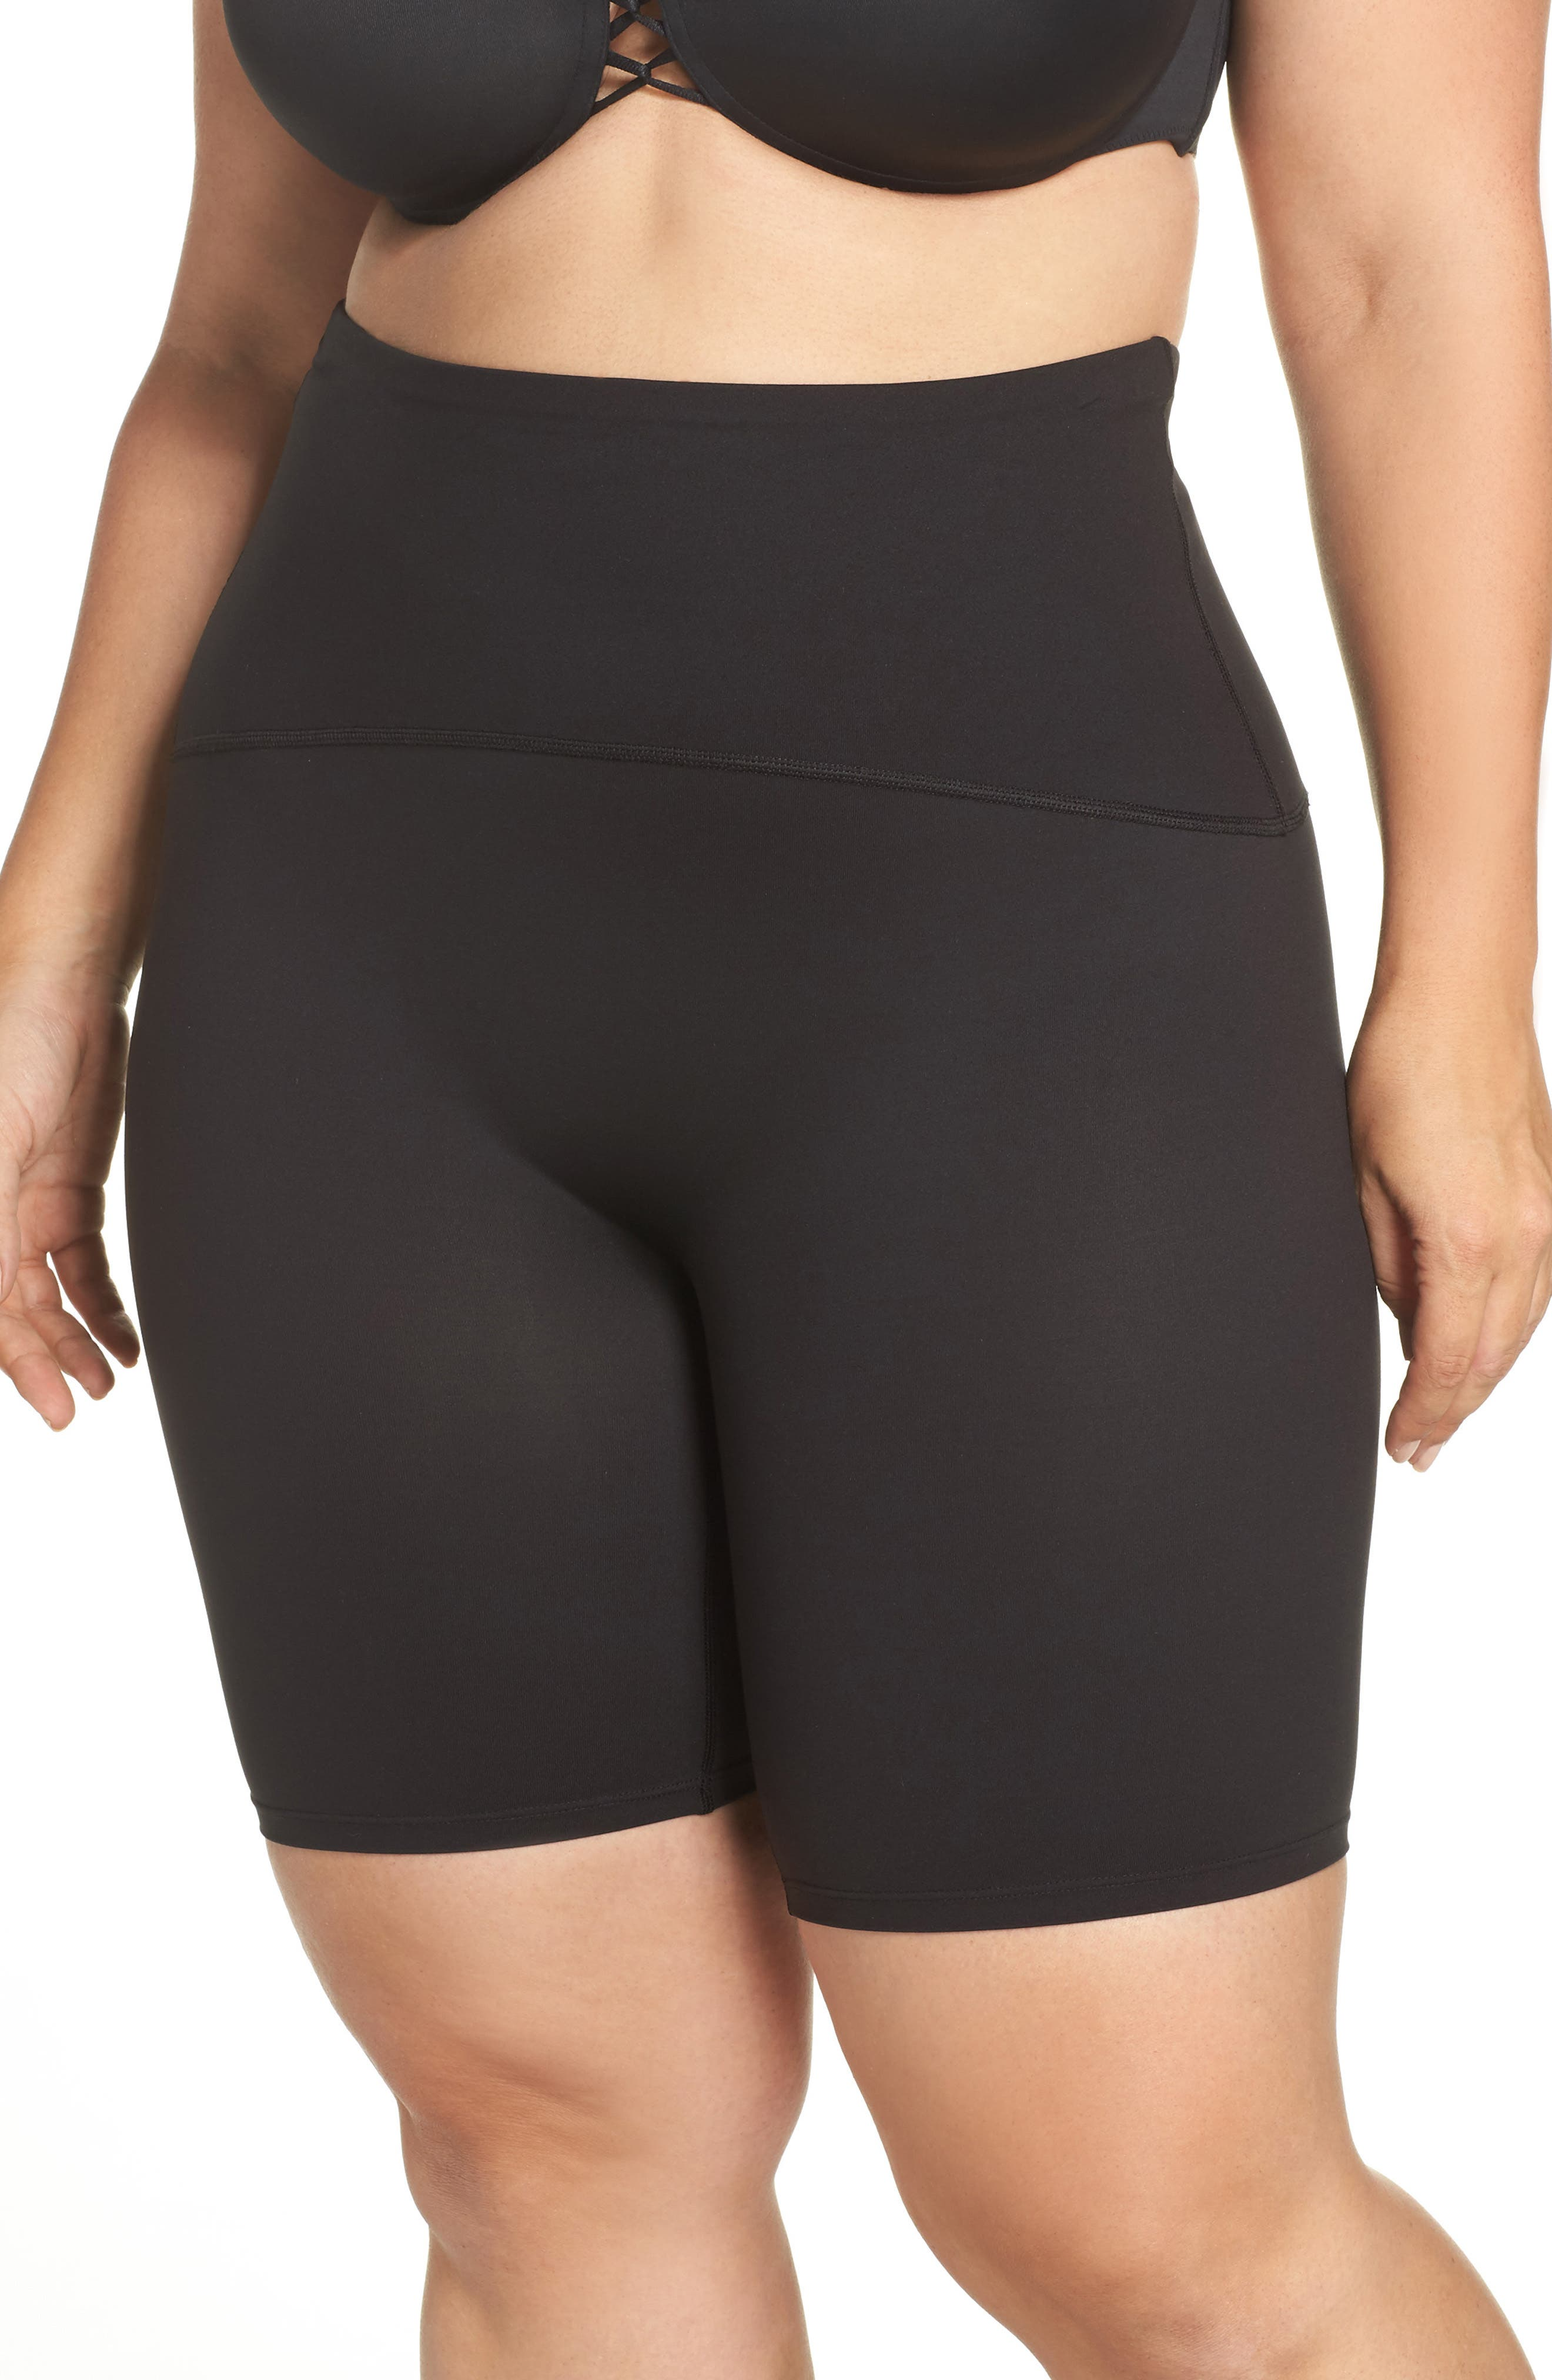 Alternate Image 1 Selected - SPANX® Sport Compression Shorts (Plus Size)